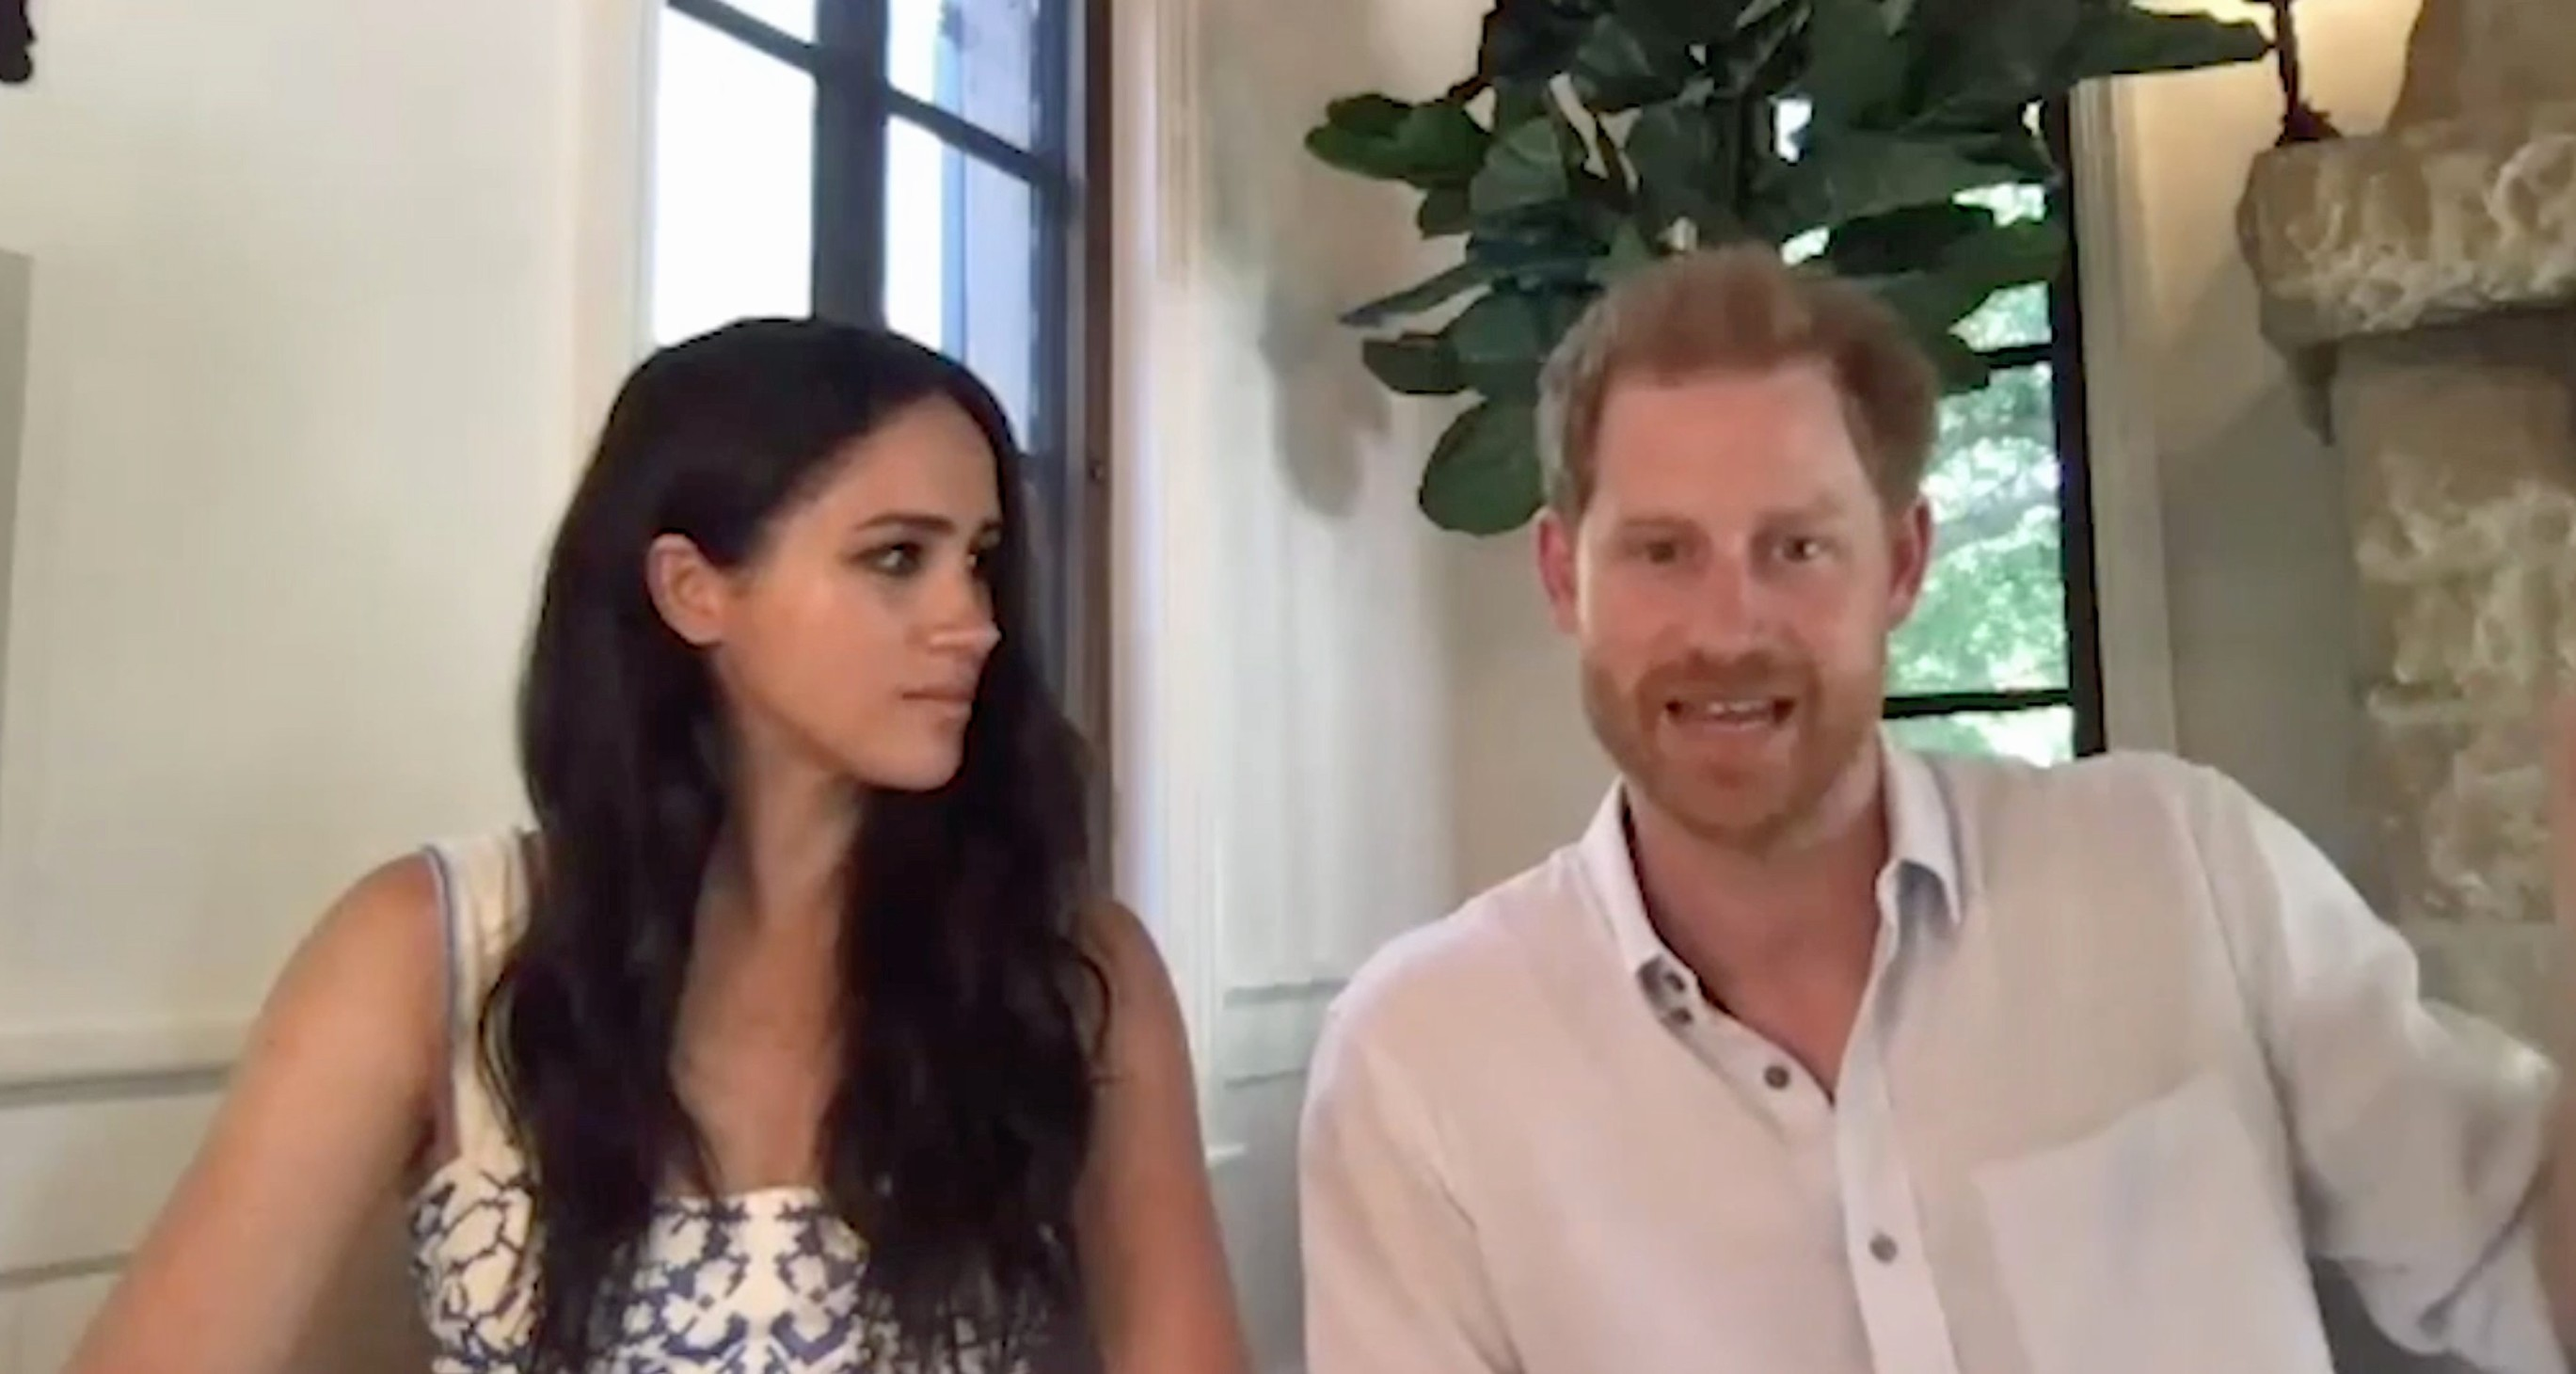 """Ferrari Press Agency Ref 12075 Sussex  1 20/08/2020 See Ferrari text Pictures MUST credit: Queen's Commonwealth Trust  Meghan Markle joined husband Prince Harry in a video broadcast from their new home in California for a conference about the British Commonwealth organisation.Former actress Meghan admitted she didn't know about it  until she joined the Royal Family.She said it was an honour to be continuing Queen Elizabeth's  legacy during a video call with young leaders from the Queen's Commonwealth Trust.The Duke, 35, and Duchess of Sussex, 39,  joined the discussion from their new  million mansion in Santa Barbara, California, on Monday, with a video of the call shared by the trust  today.     Prince Harry and Meghan the Duke and Duchess of Sussex,  spoke adoringly of the Queen, 94, whom they referred to as grandmother during the video call.It comes  weeks after their rift with the Royal Family was laid bare in their biography Finding Freedom.Their loving comments come after the couple faced criticism for their last conversation with the group, in which they appeared to take a swipe at the British Empire by saying the history of the Commonwealth """"must be acknowledged"""" even if it's '""""uncomfortable""""The commonwealth is an organisation made up of mostly former colonies of the British empire.  OPS: Prince Harry and Meghan Markle in their video conference from California for the Queen's Commonwealth Trust  Picture supplied by Ferrari,Image: 554004997, License: Rights-managed, Restrictions: , Model Release: no, Credit line: Queen's Commonwealth Trust / Ferrari / Profimedia"""